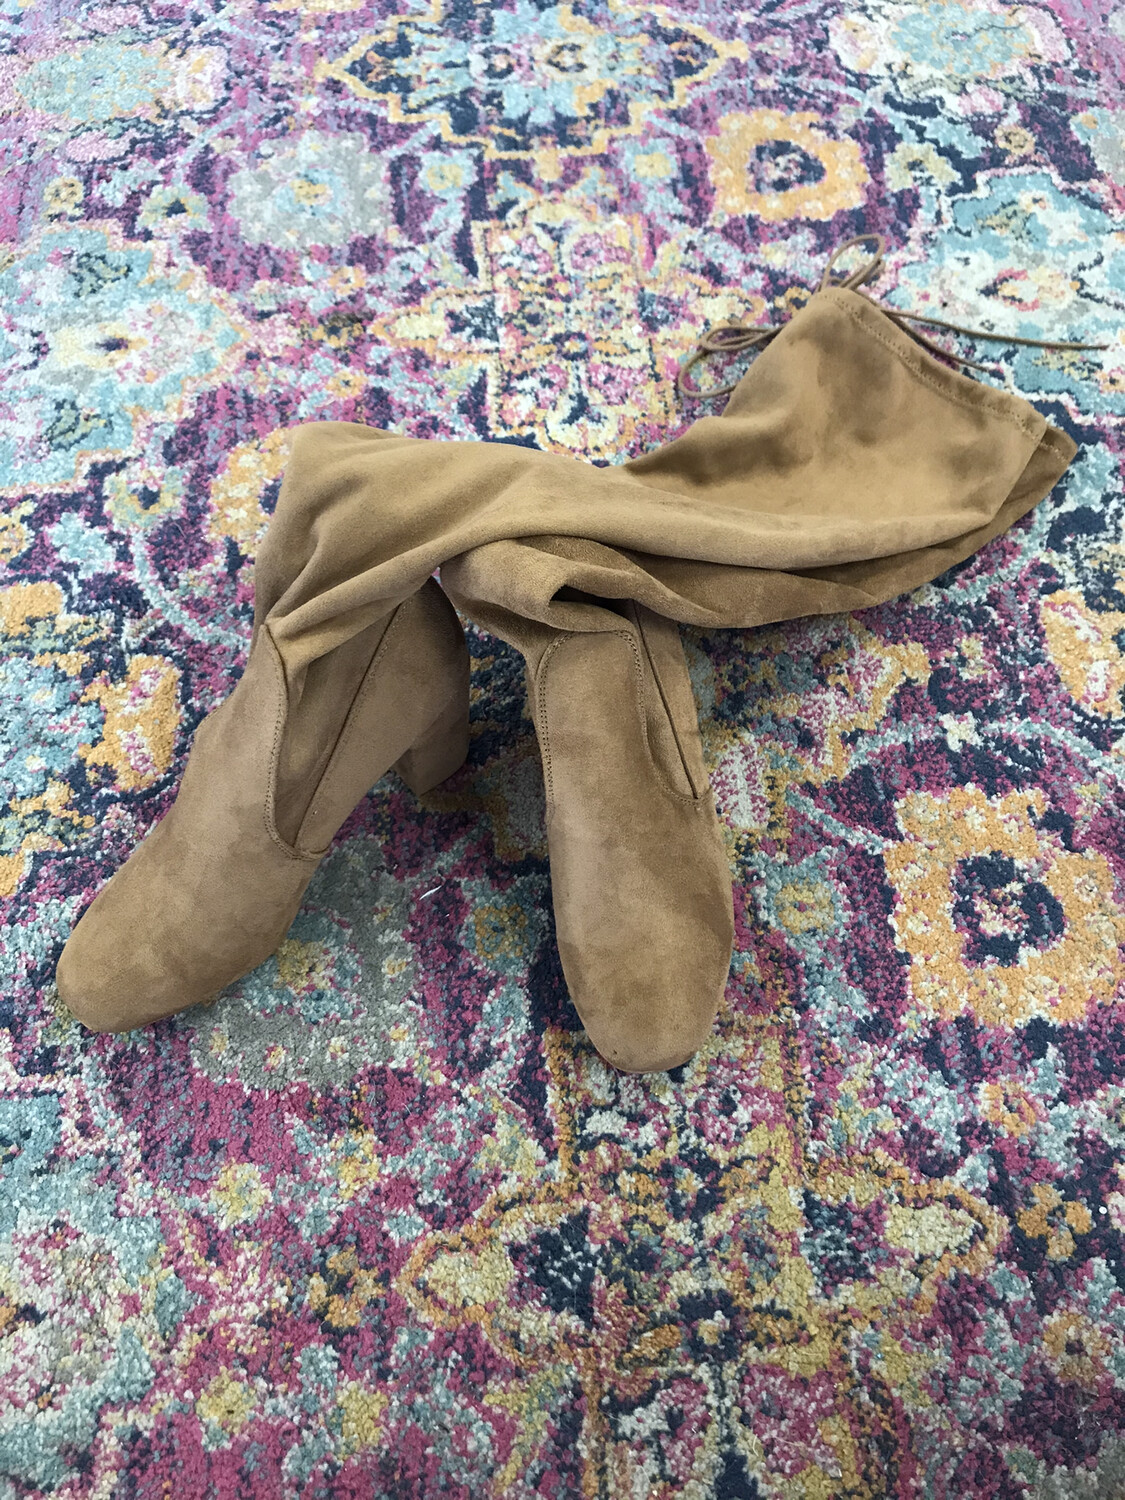 Chinese Laundry Brown Knee High Boots - Size 8.5